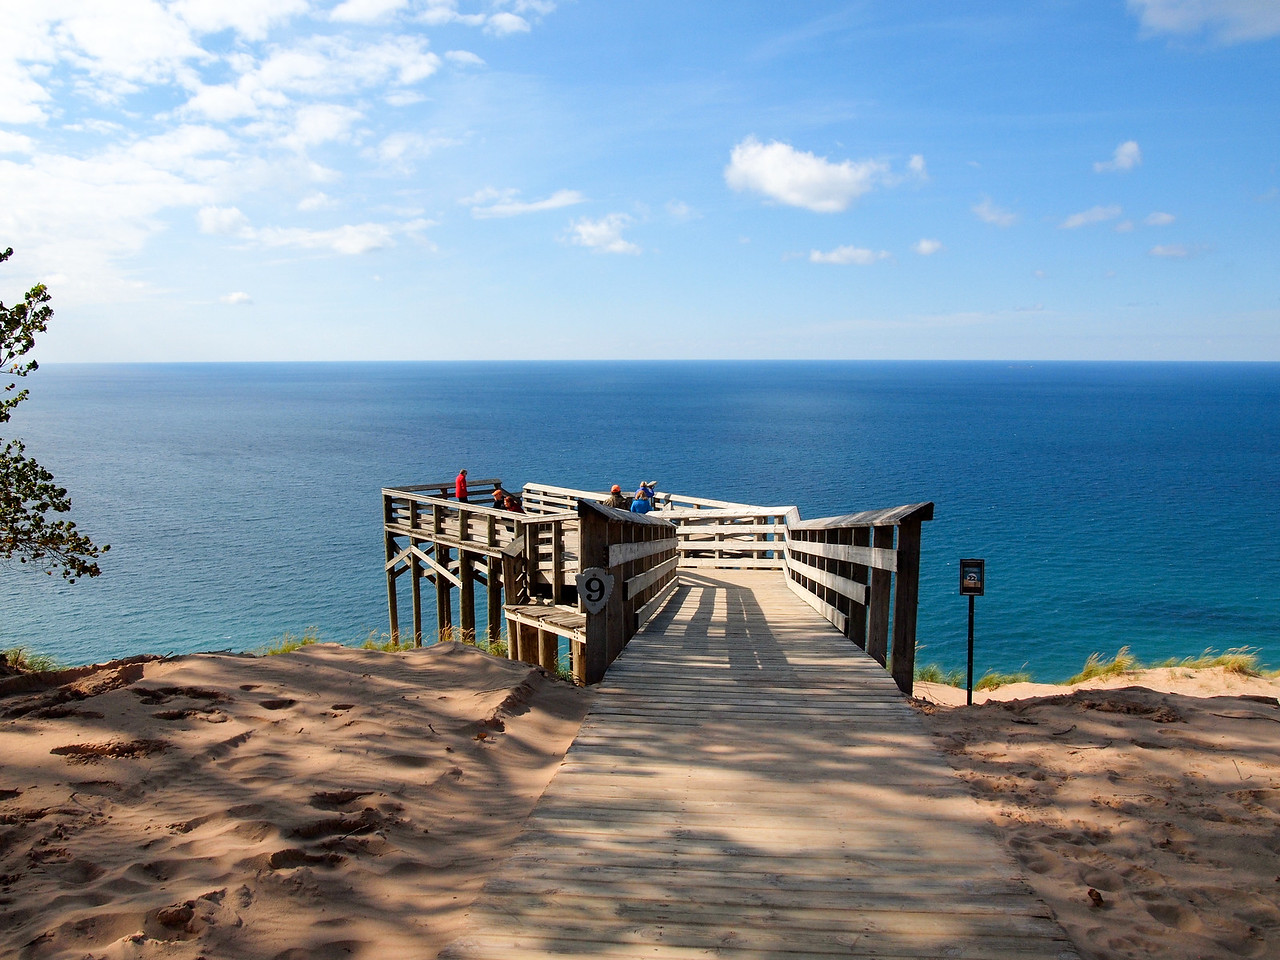 Sleeping Bear Dunes viewpoint